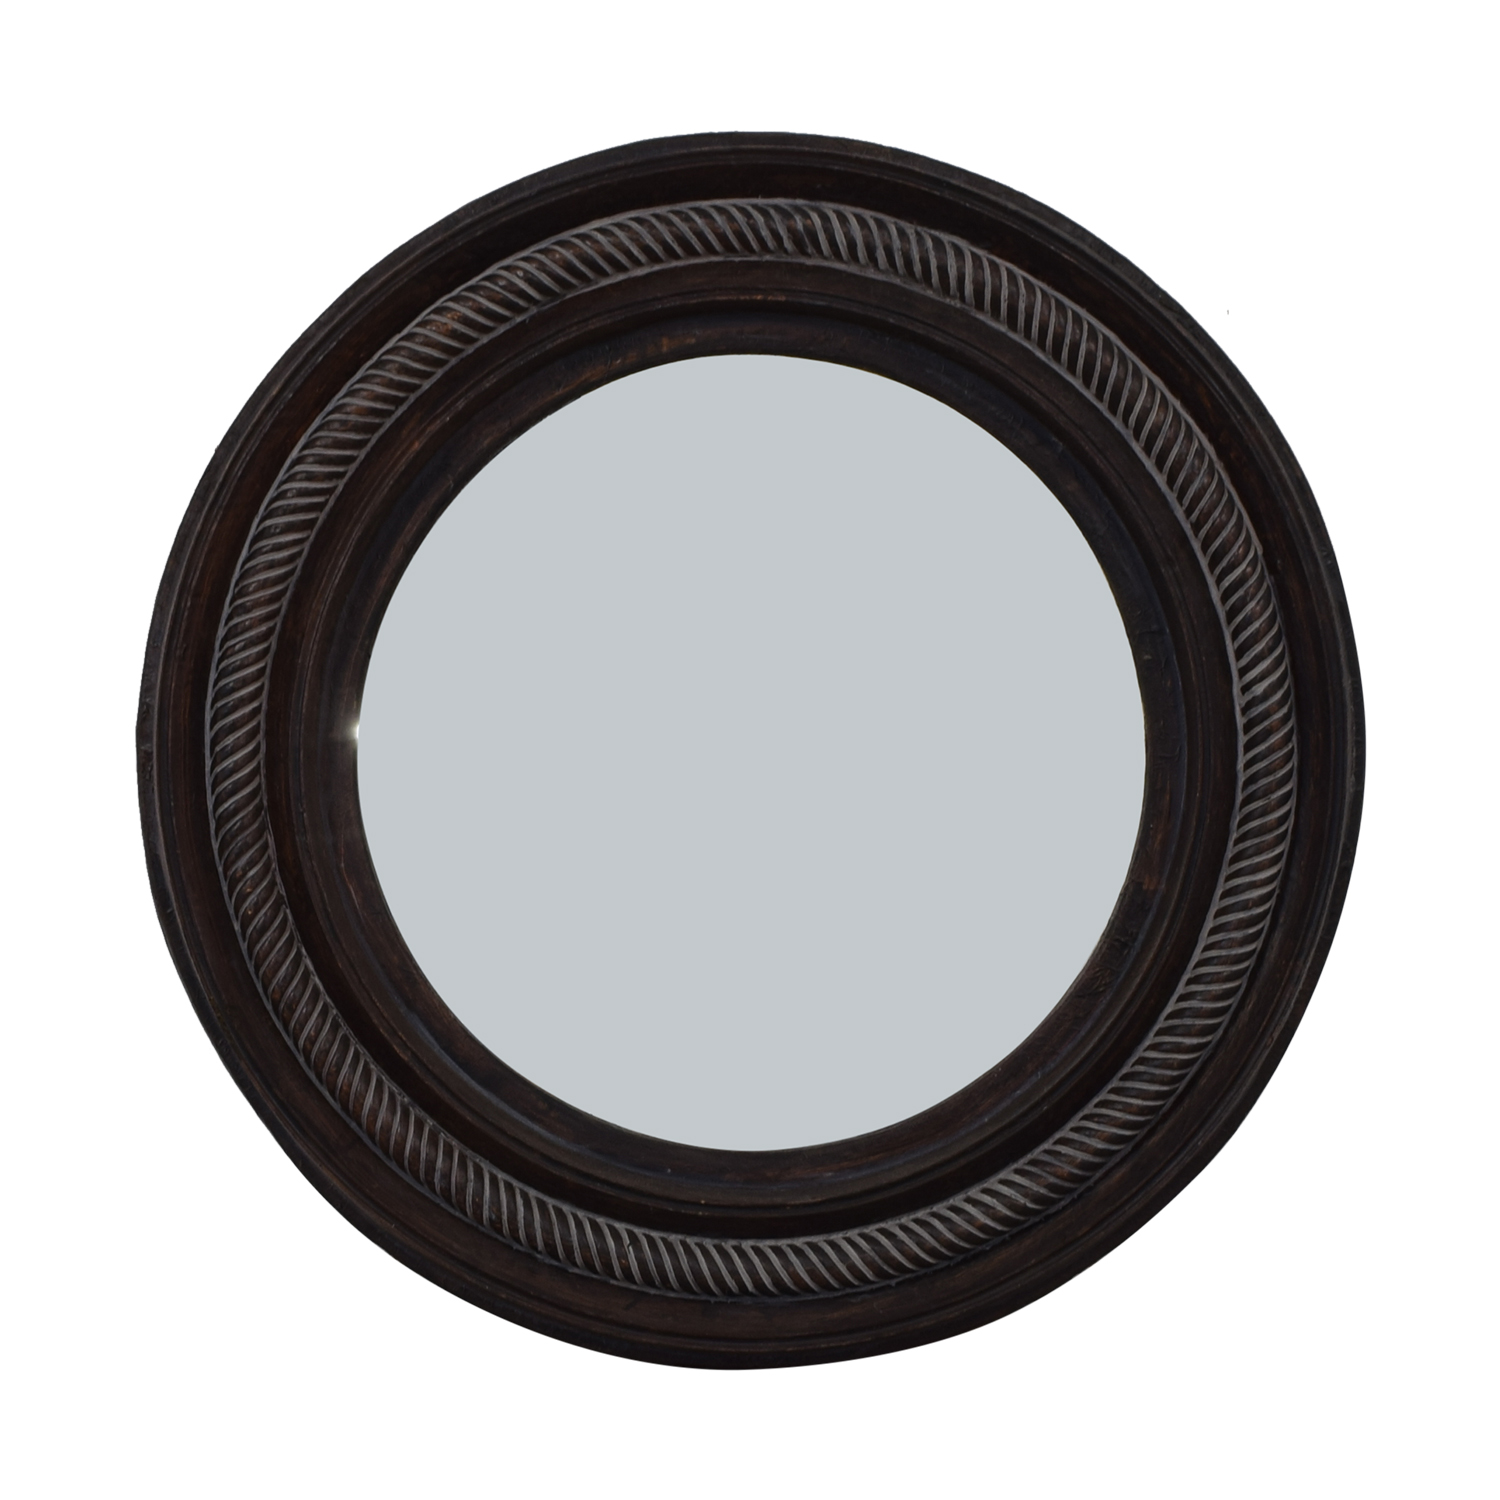 buy  Circular Framed Round Mirror online